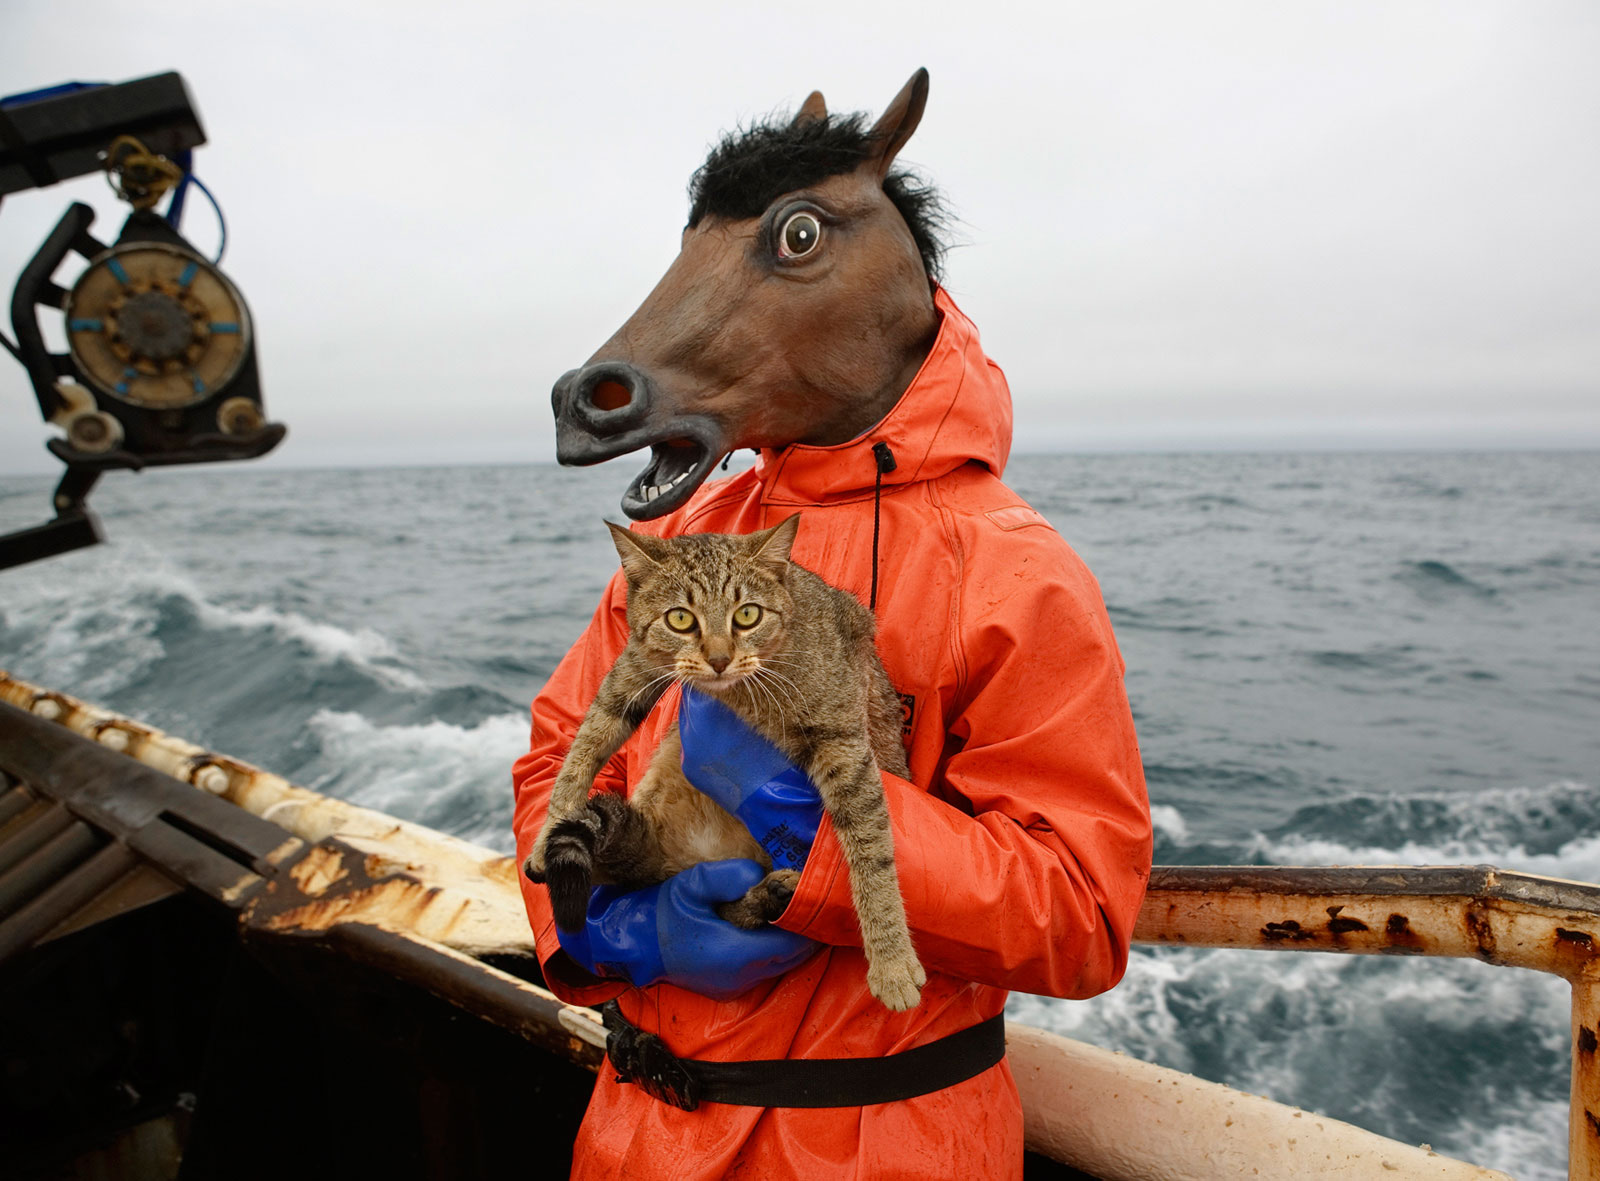 Kitty-and-Horse-Fisherman-by-Corey-Arnold